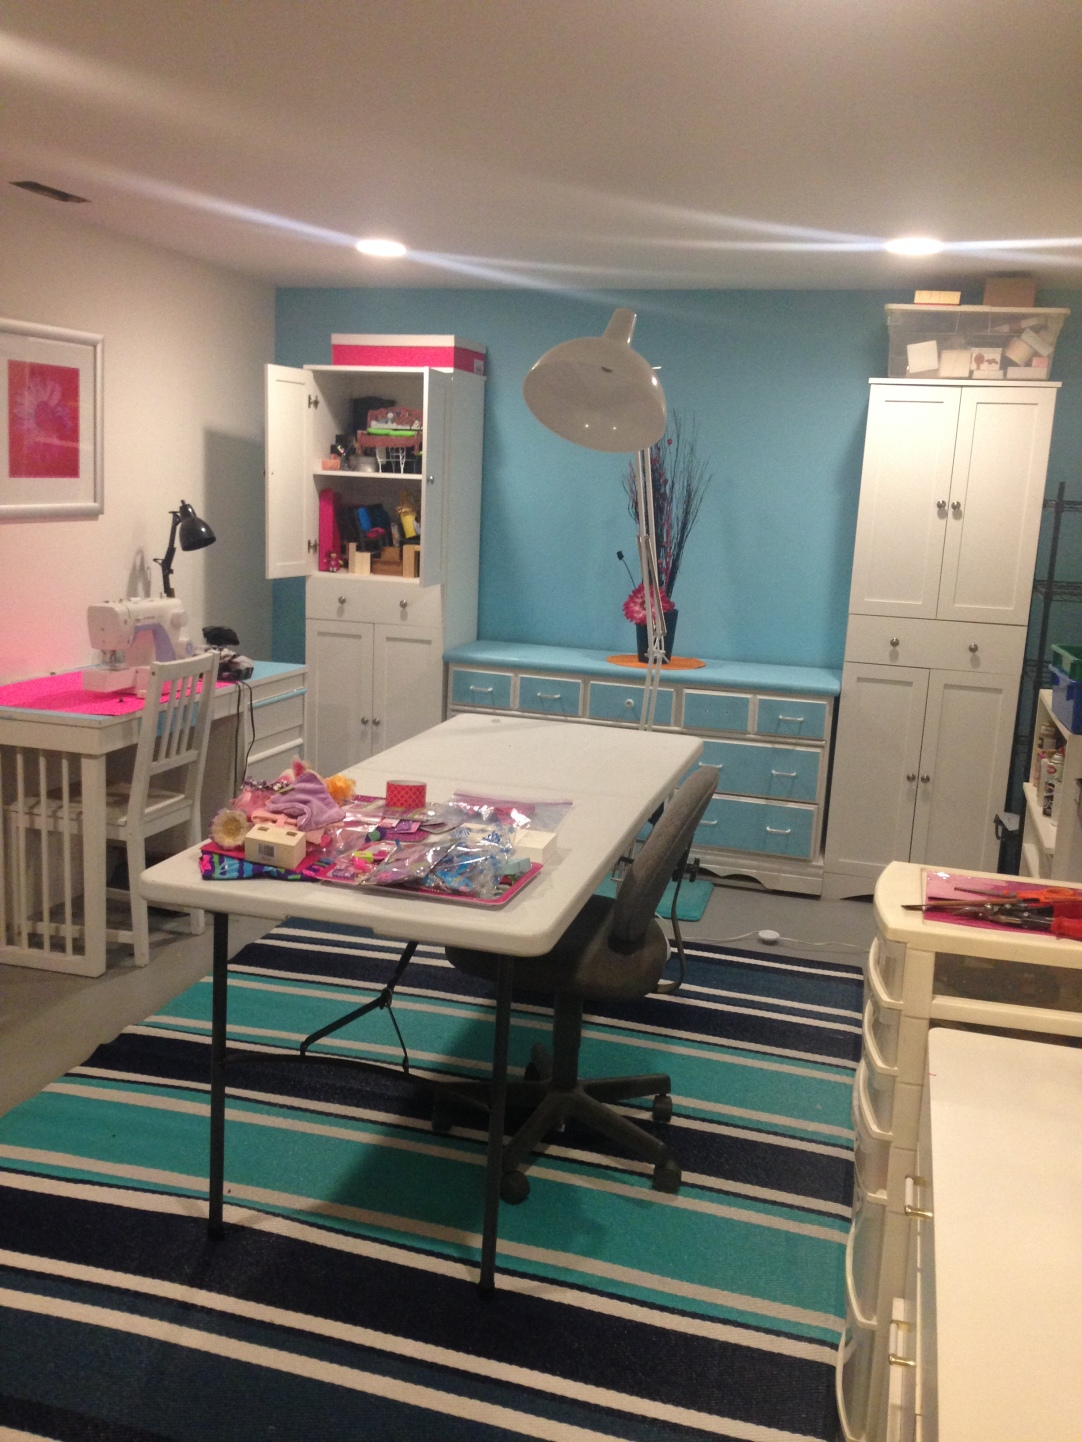 How To Organize A Craft Room #craft_storage #craftroom #craftroom_design #craftroom_organization #multi-purpose